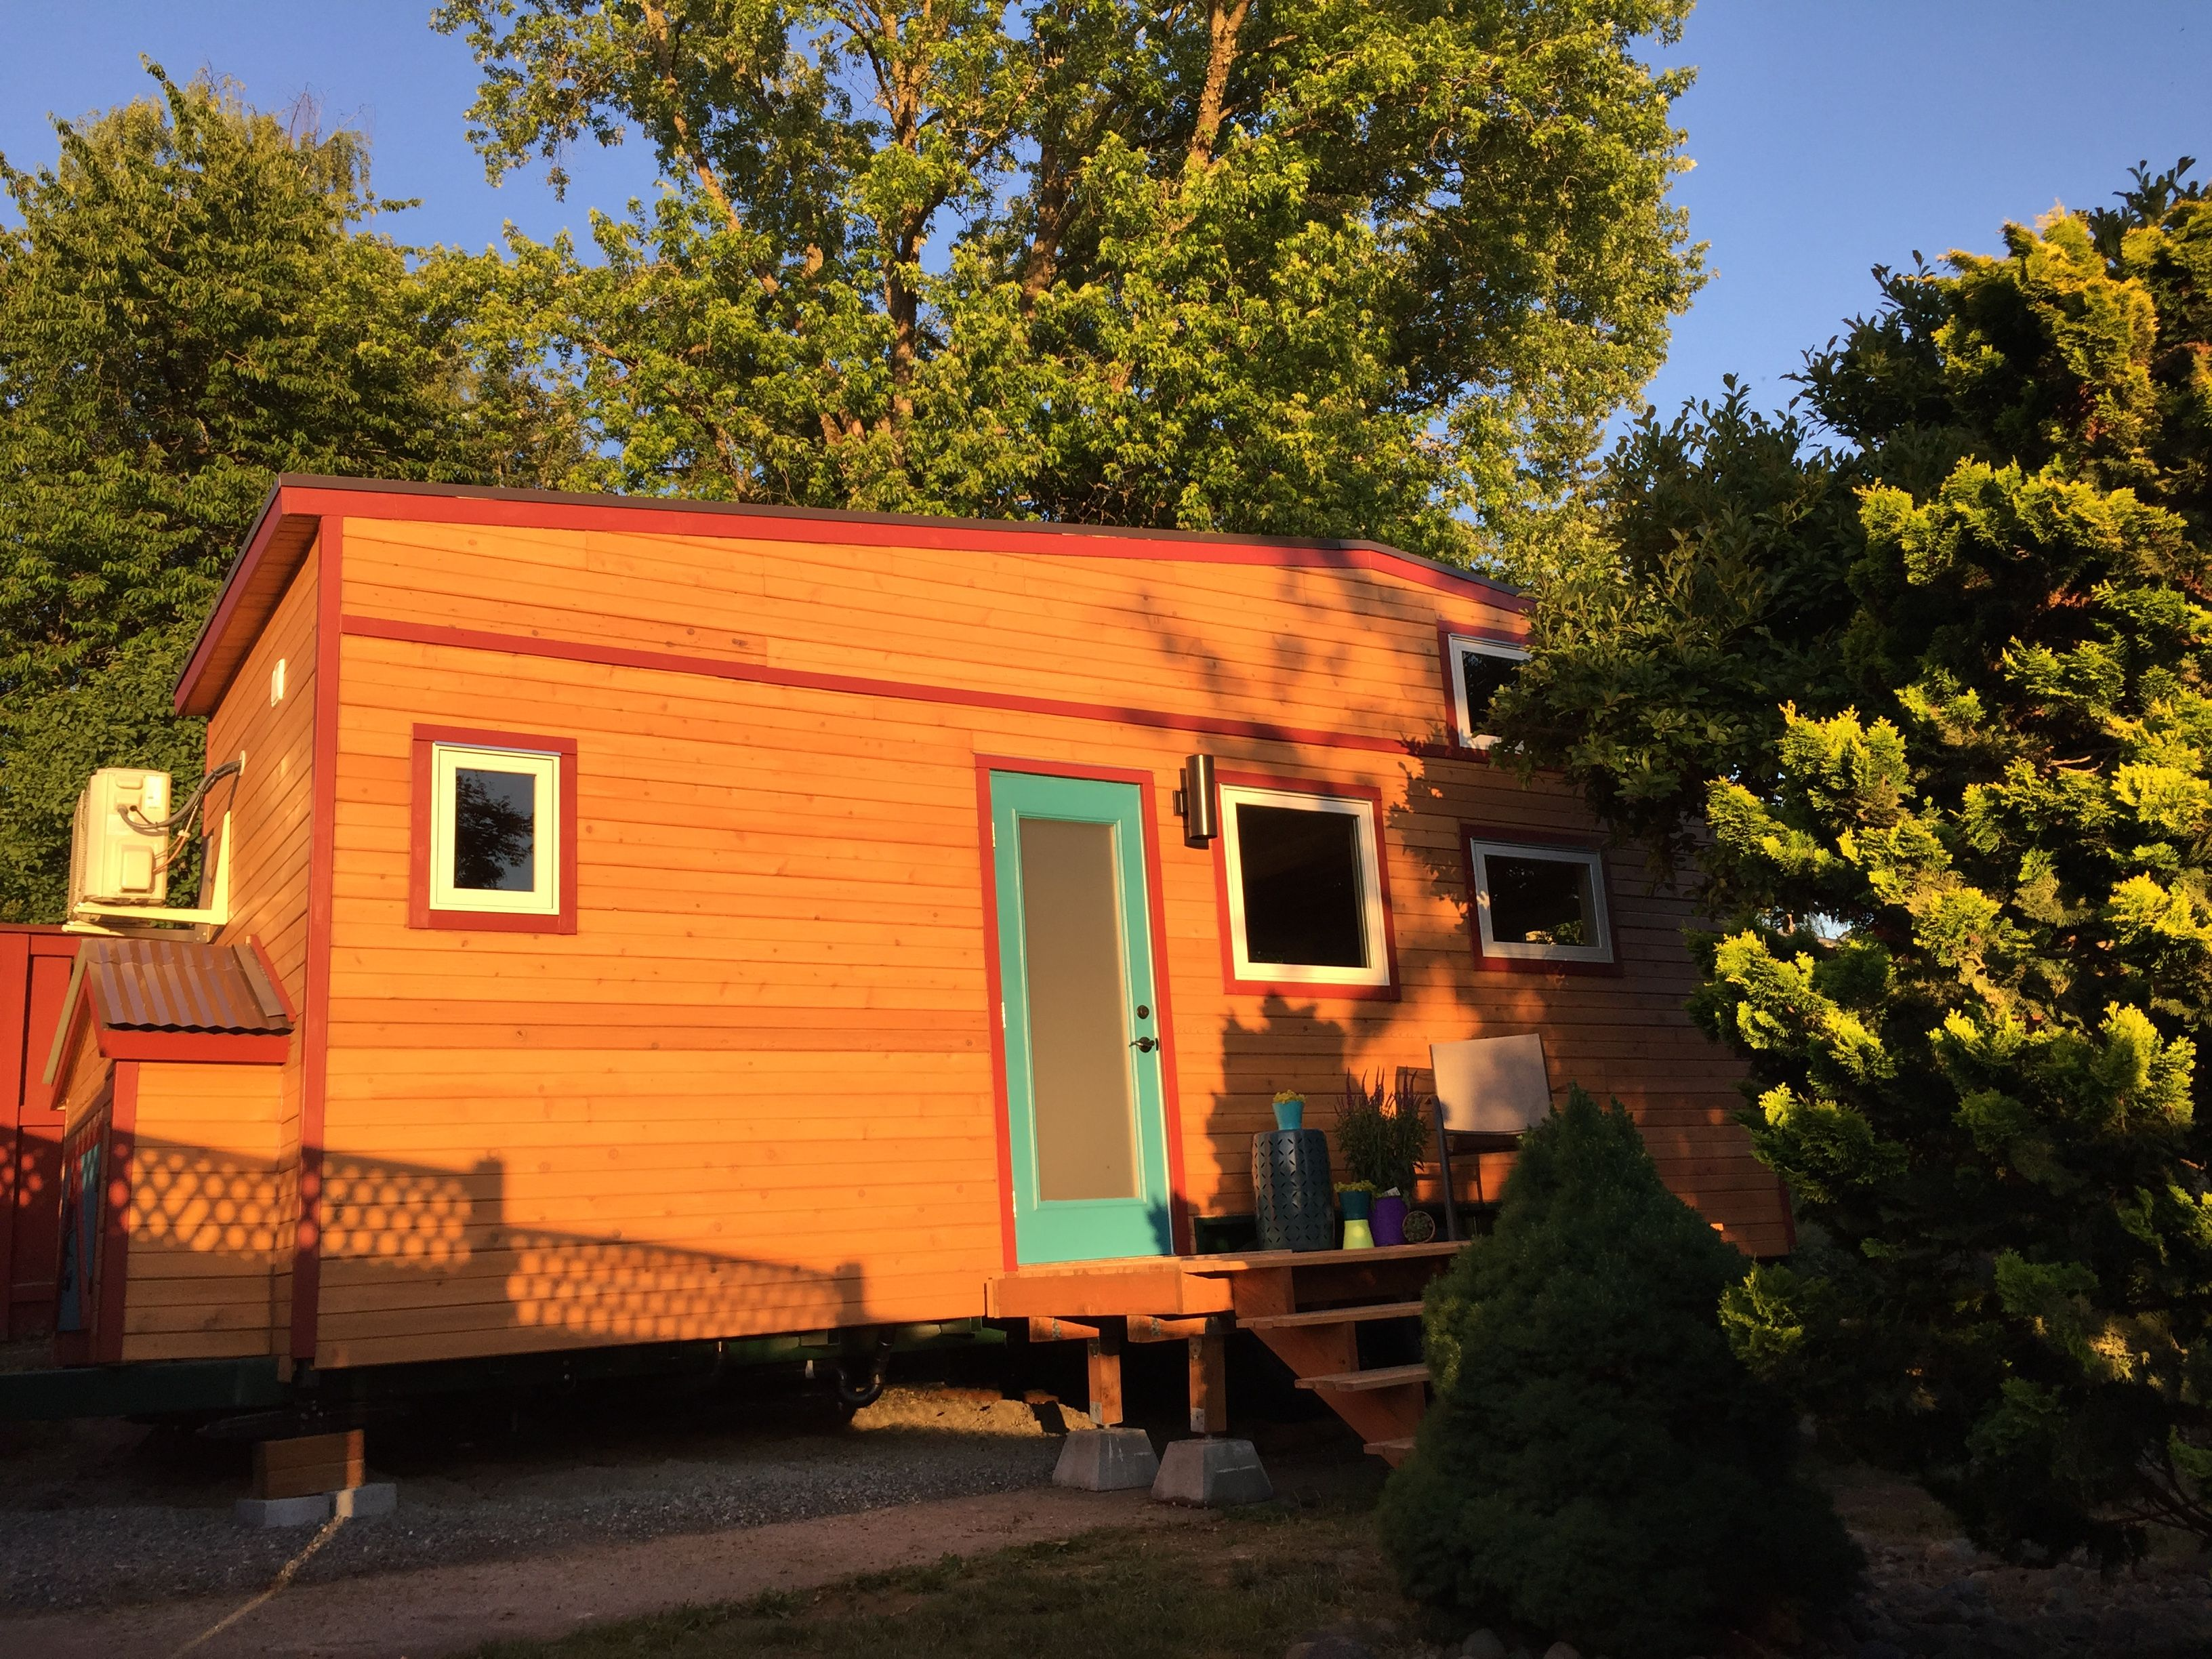 Aspire The Affordable Tiny House In A Kit